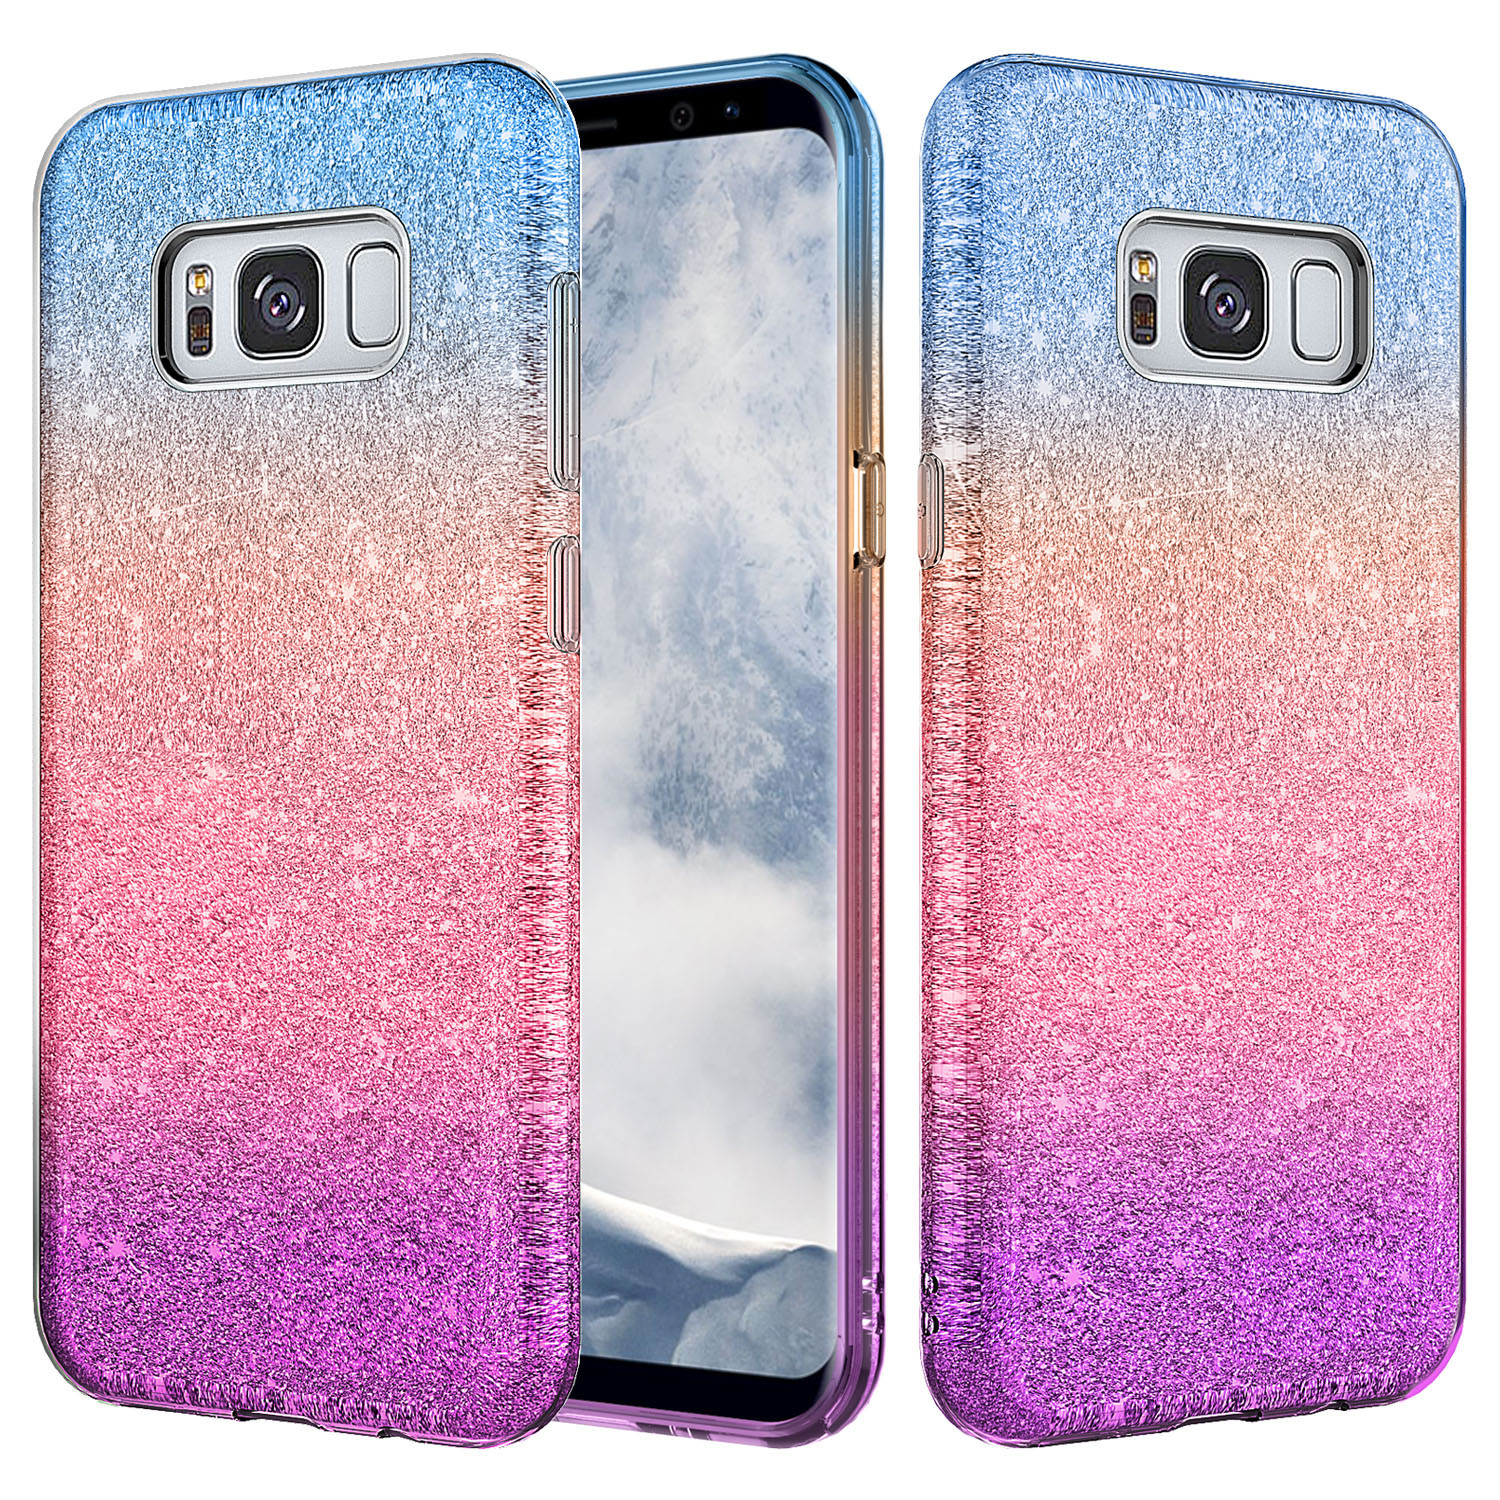 Samsung Galaxy S8 Plus Case, Slim Glitter Shine Hybrid TPU Case with reinforced Polycarbonate backing for Galaxy S8 Plus, SM-G955 - Blue